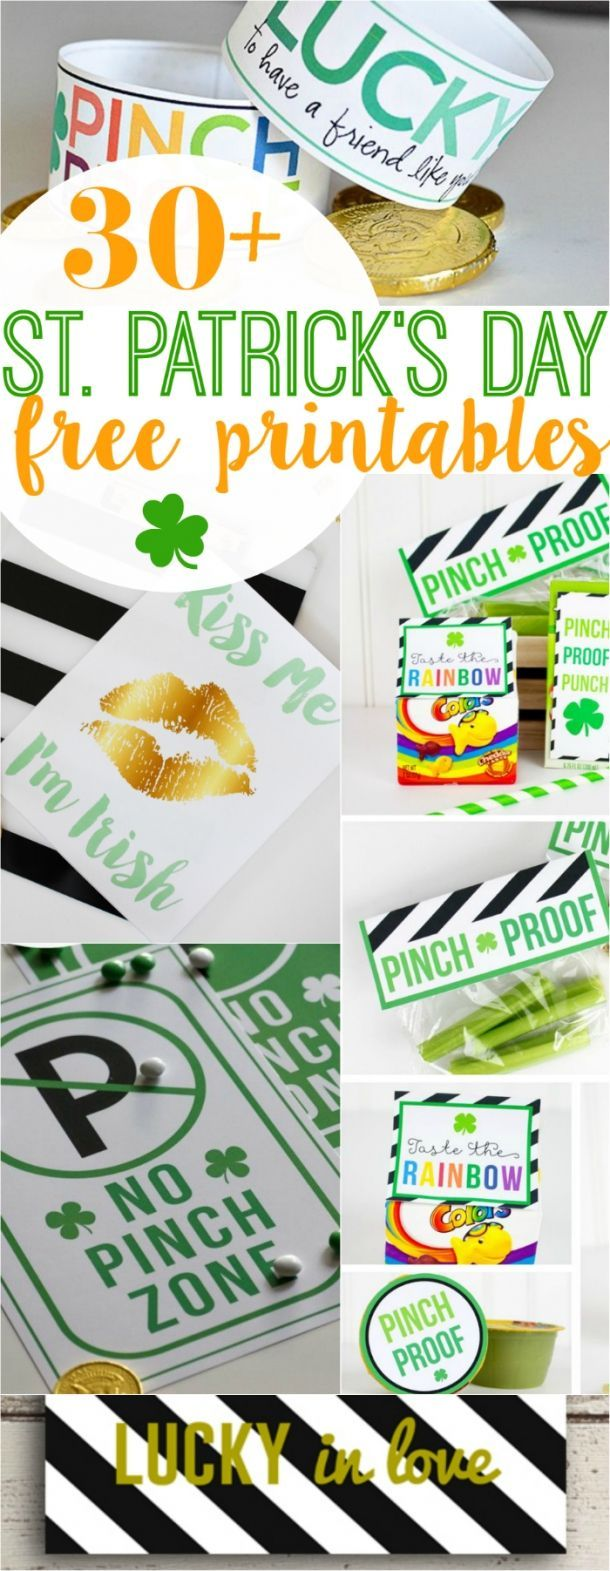 30+ St Patricks Day FREE printables! Your one stop for all things green and lucky! Lots of cute home decor ideas and fun kid activities for St Patrick